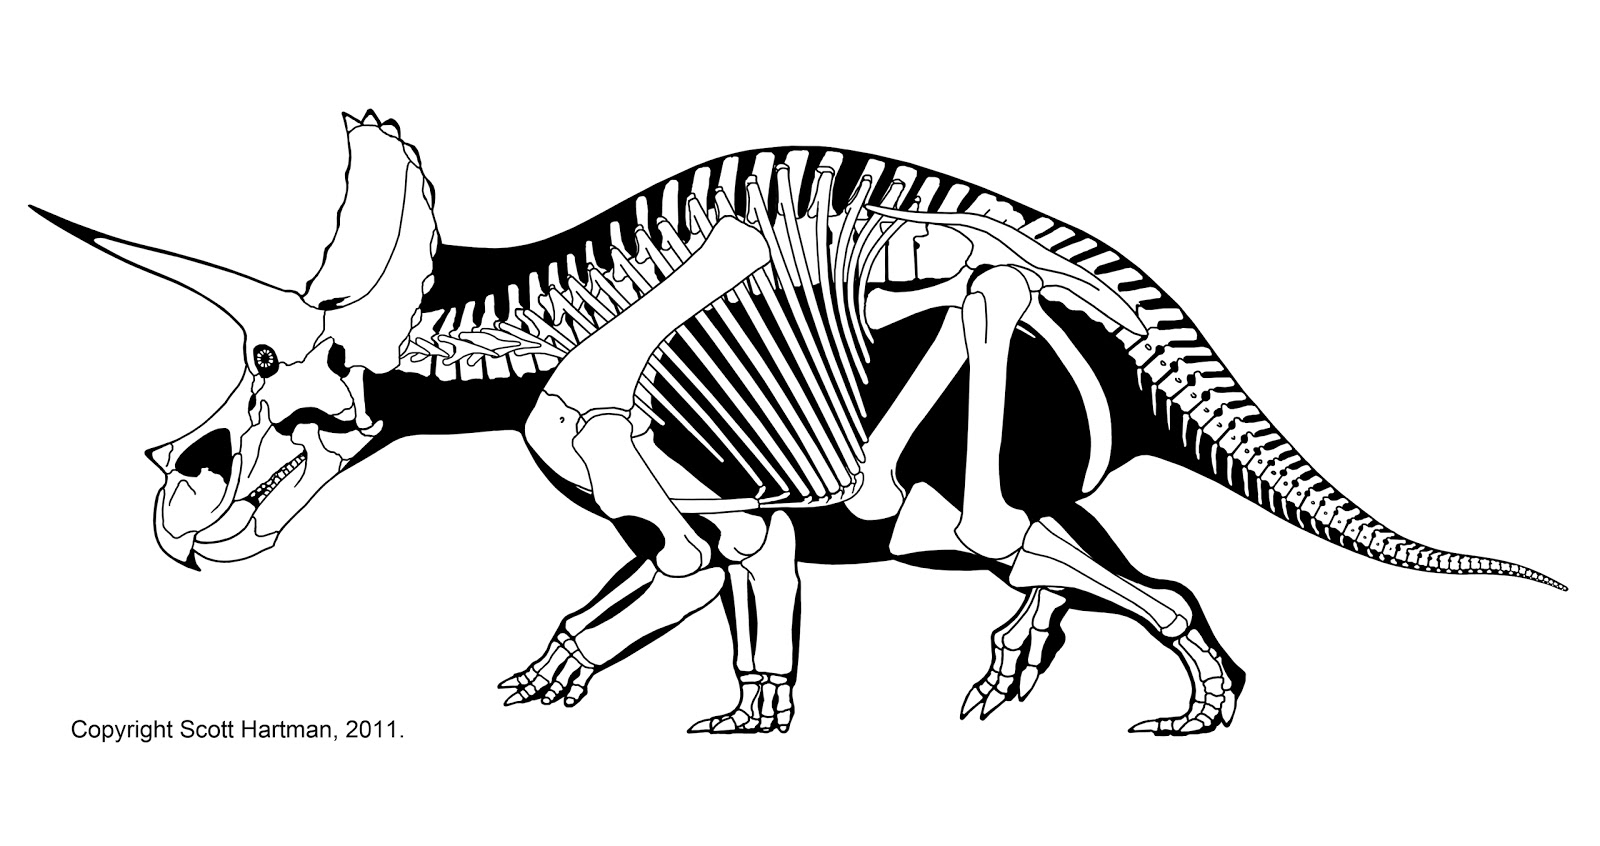 Dinosaur Skeleton Drawing At Getdrawings